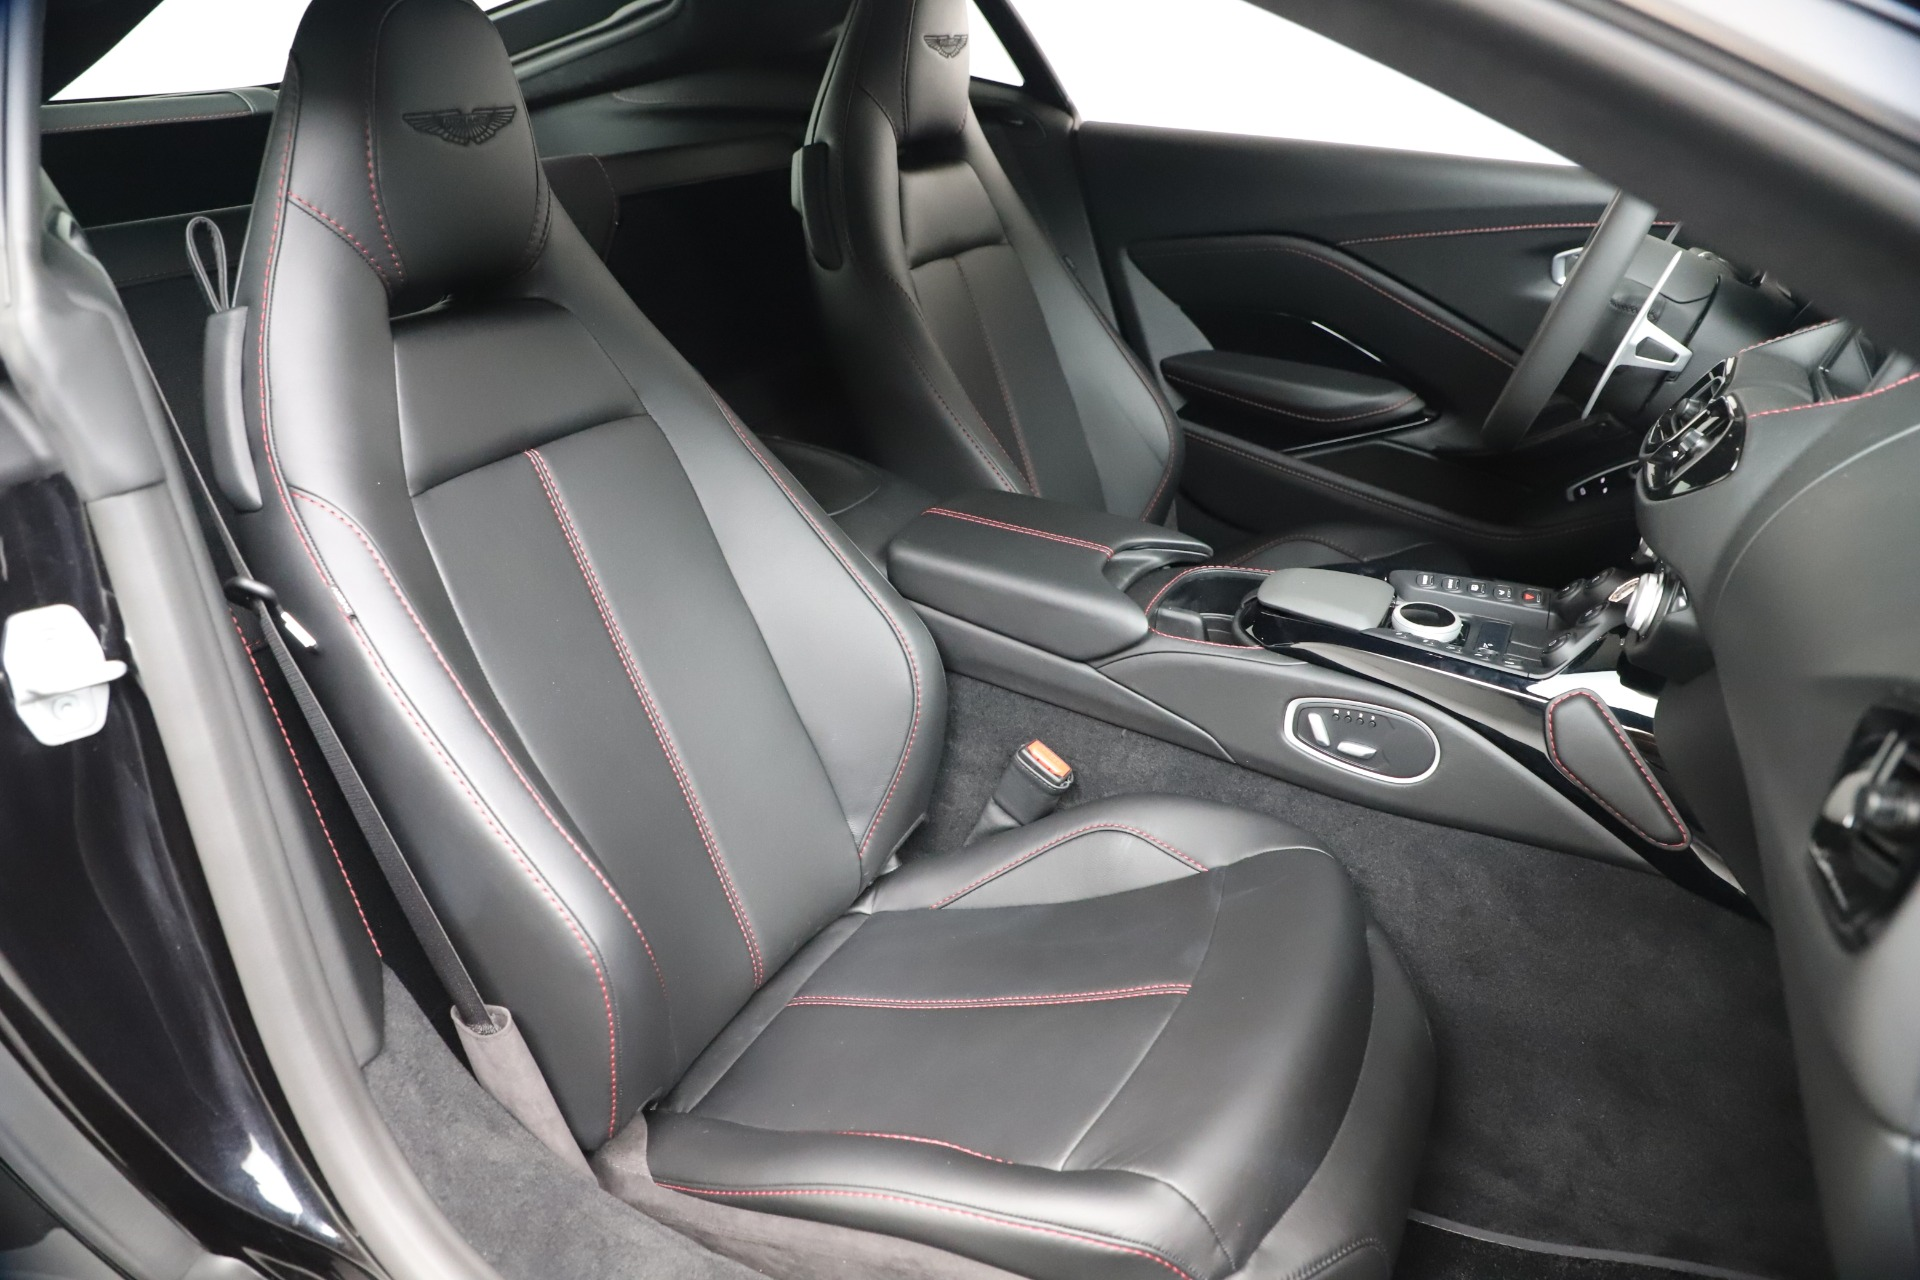 Used 2020 Aston Martin Vantage Coupe For Sale In Westport, CT 3340_p19